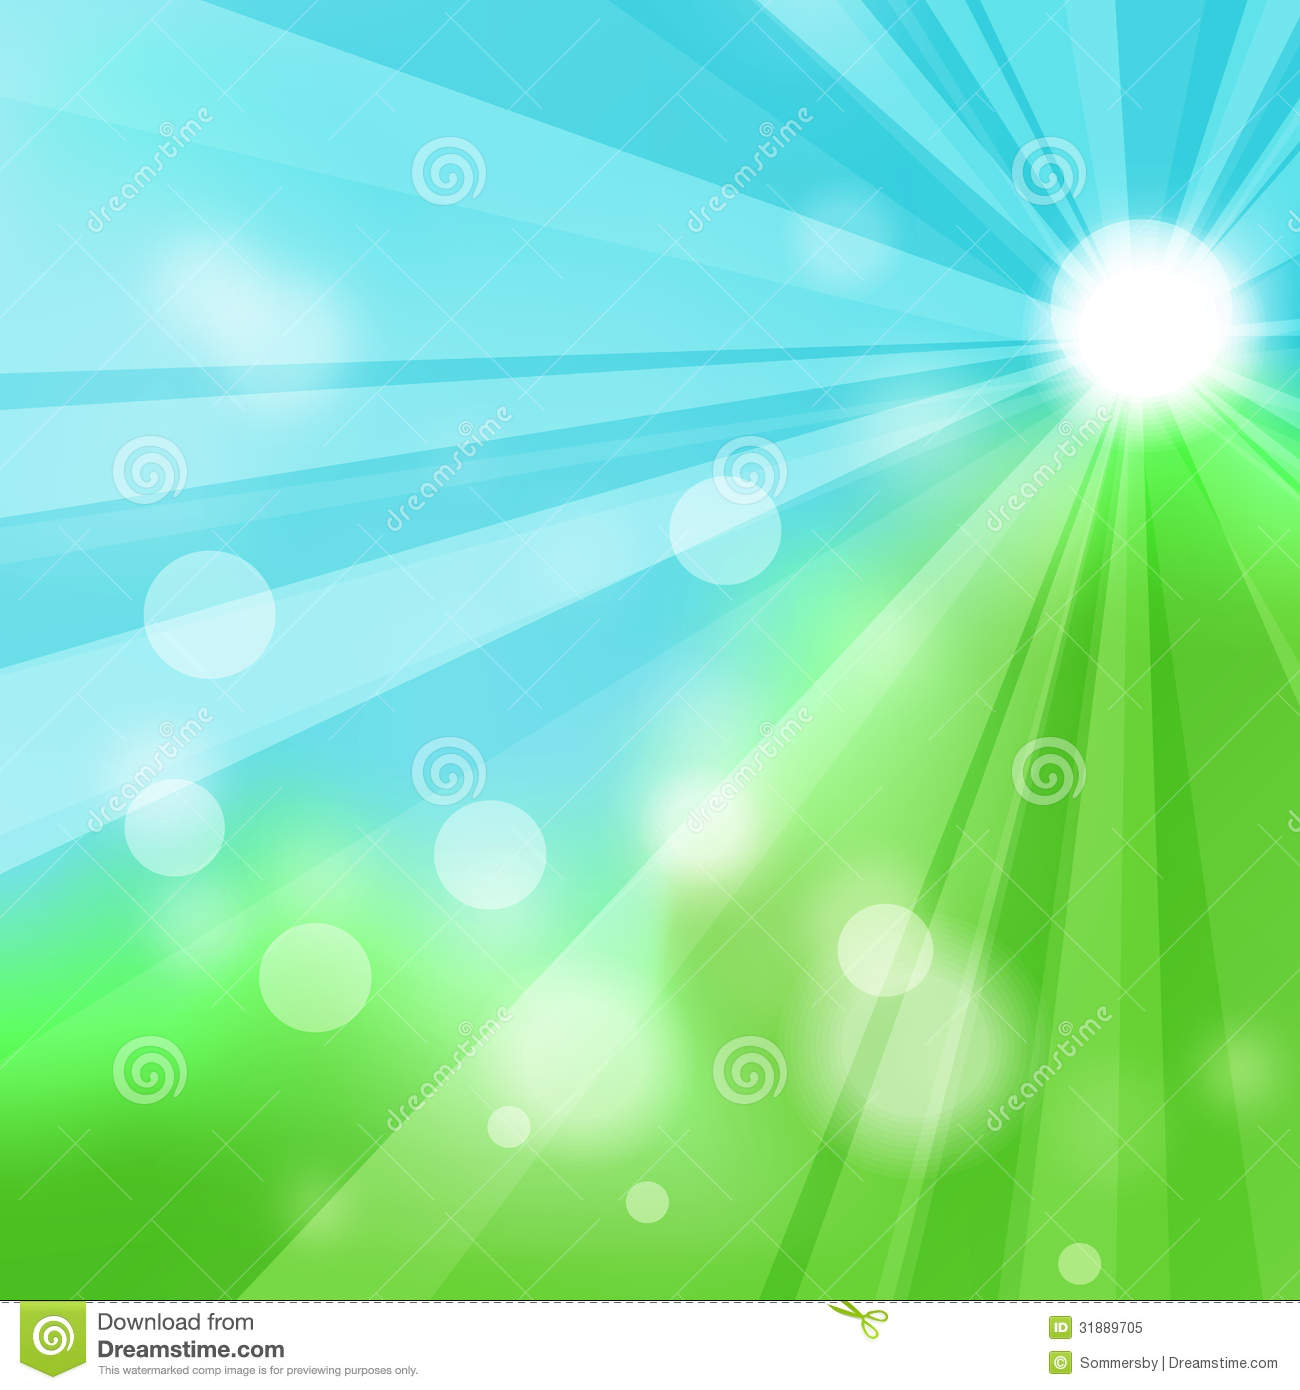 Nature Images 2mb: Natural Green Abstract Background With The Rays Stock